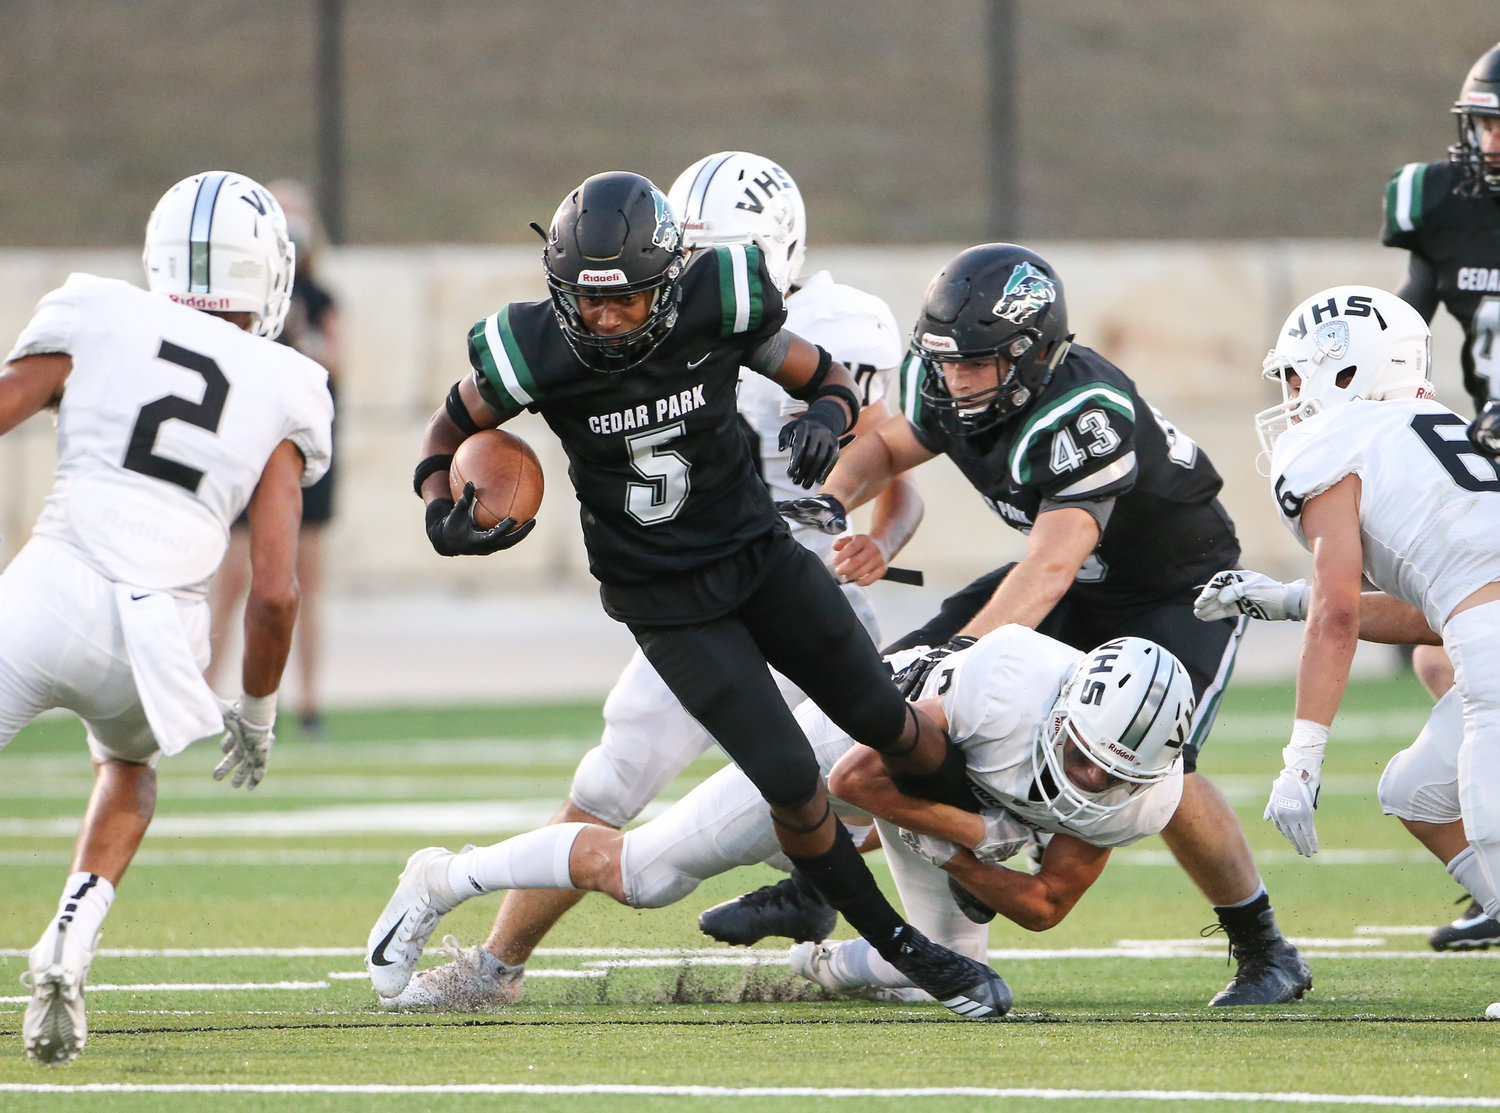 Cedar Park Timberwolves sophomore Kiyon King (5) carries the ball during a high school football game between the Cedar Park Timberwolves and the Vandegrift Vipers on Friday, Aug. 31, 2018 in Cedar Park, Texas.